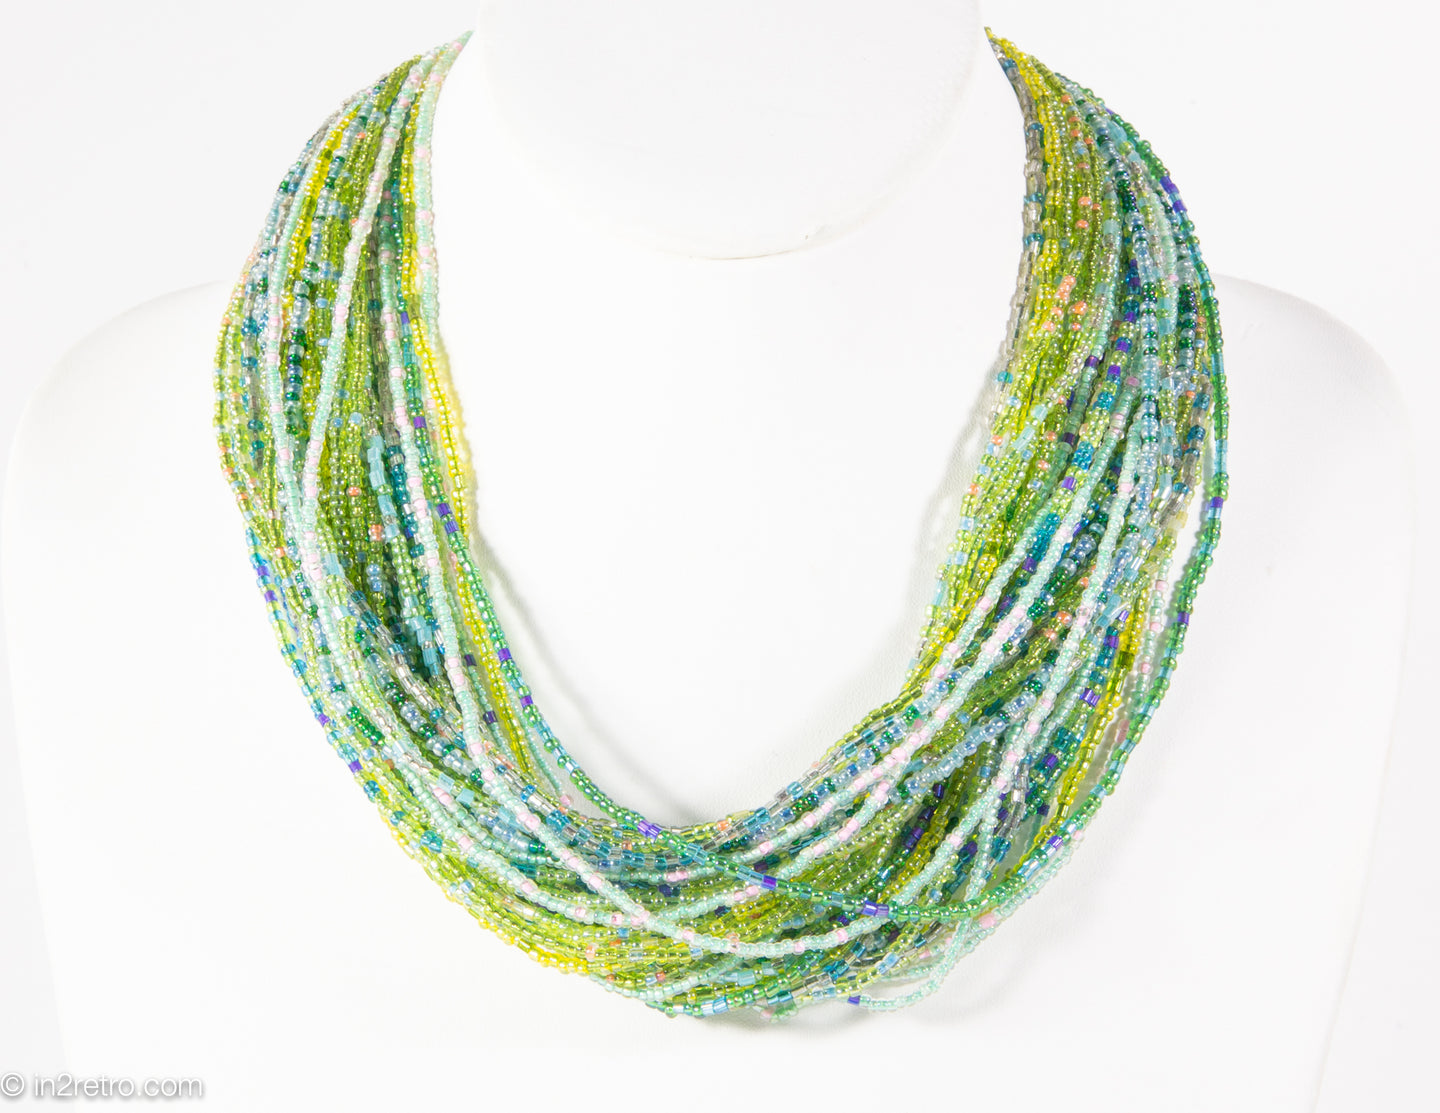 VINTAGE IRIDESCENT GREEN SEED BEADS MULTI-STRANDS TORSADE NECKLACE